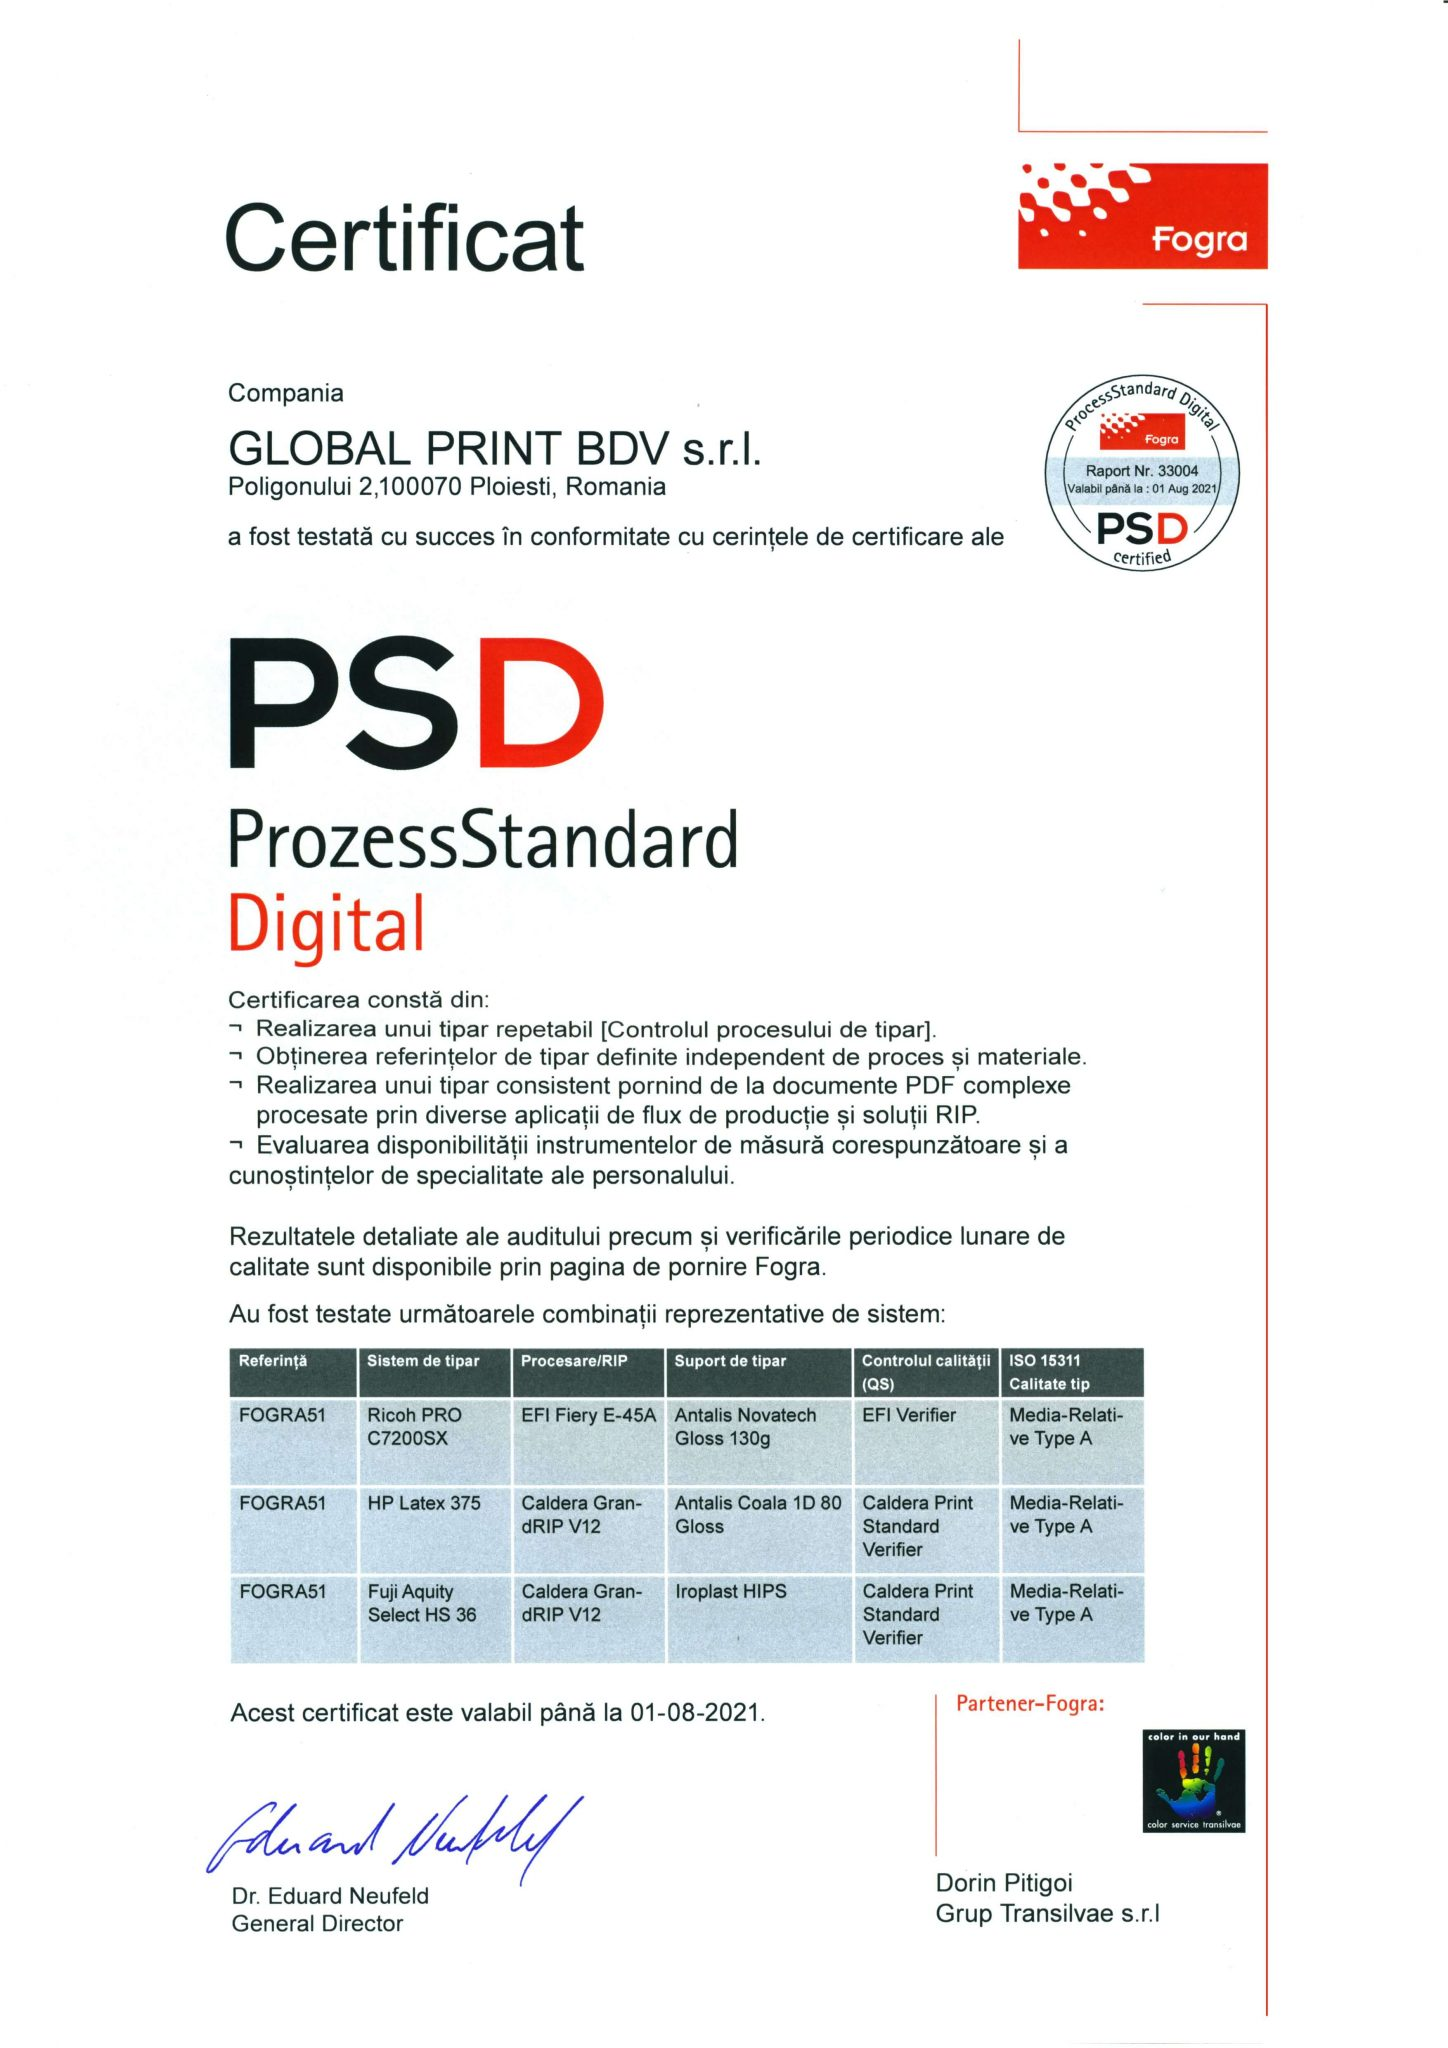 Fogra printing certification